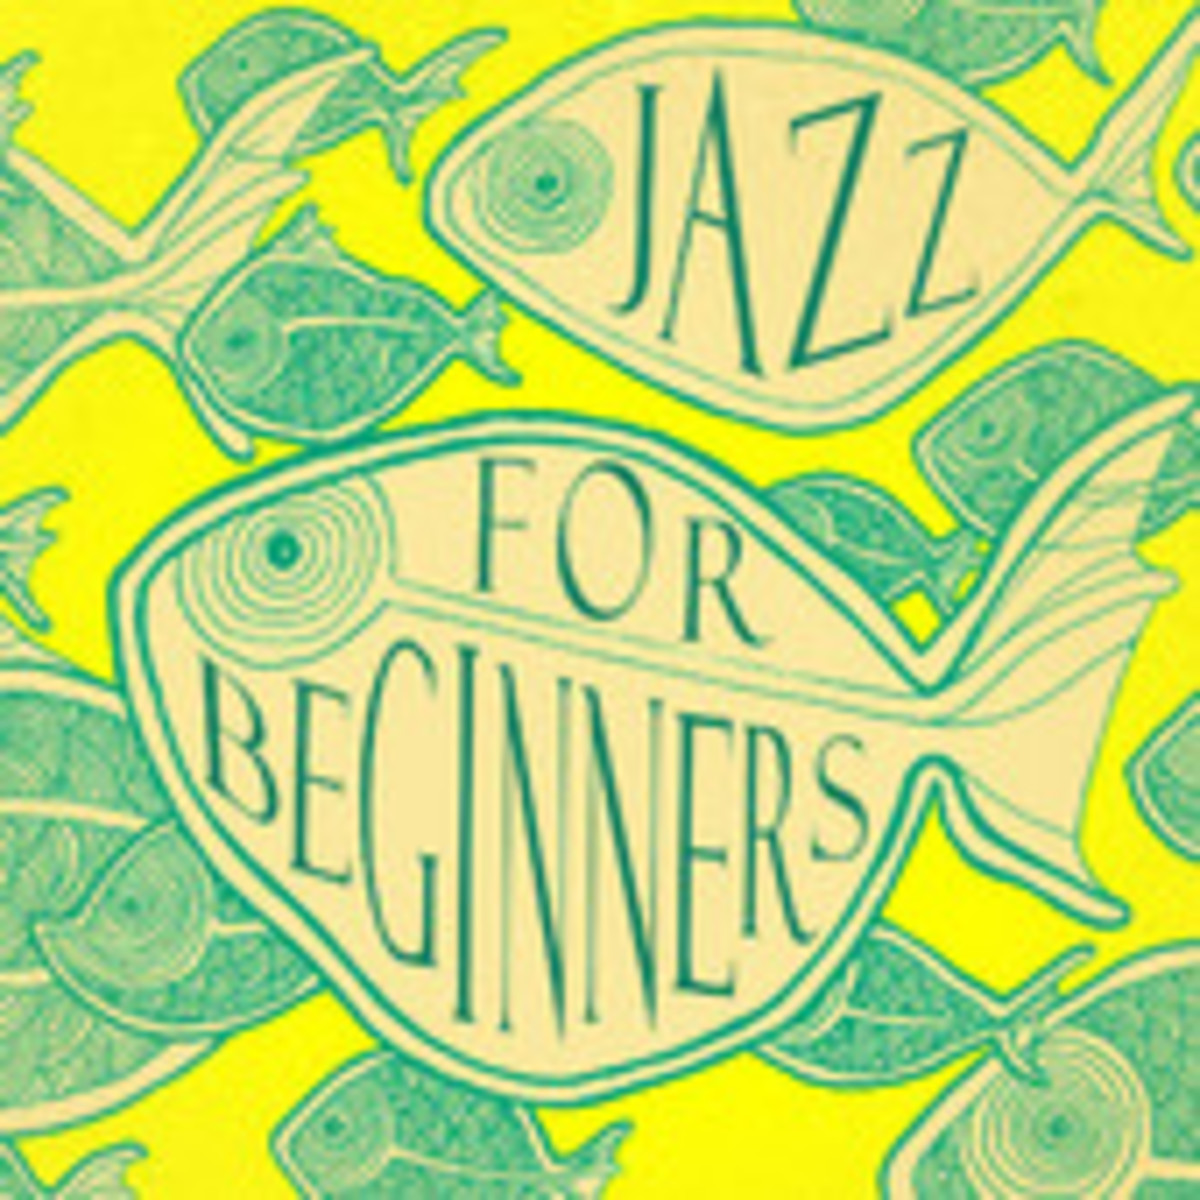 Jazz for Beginners on ITunes